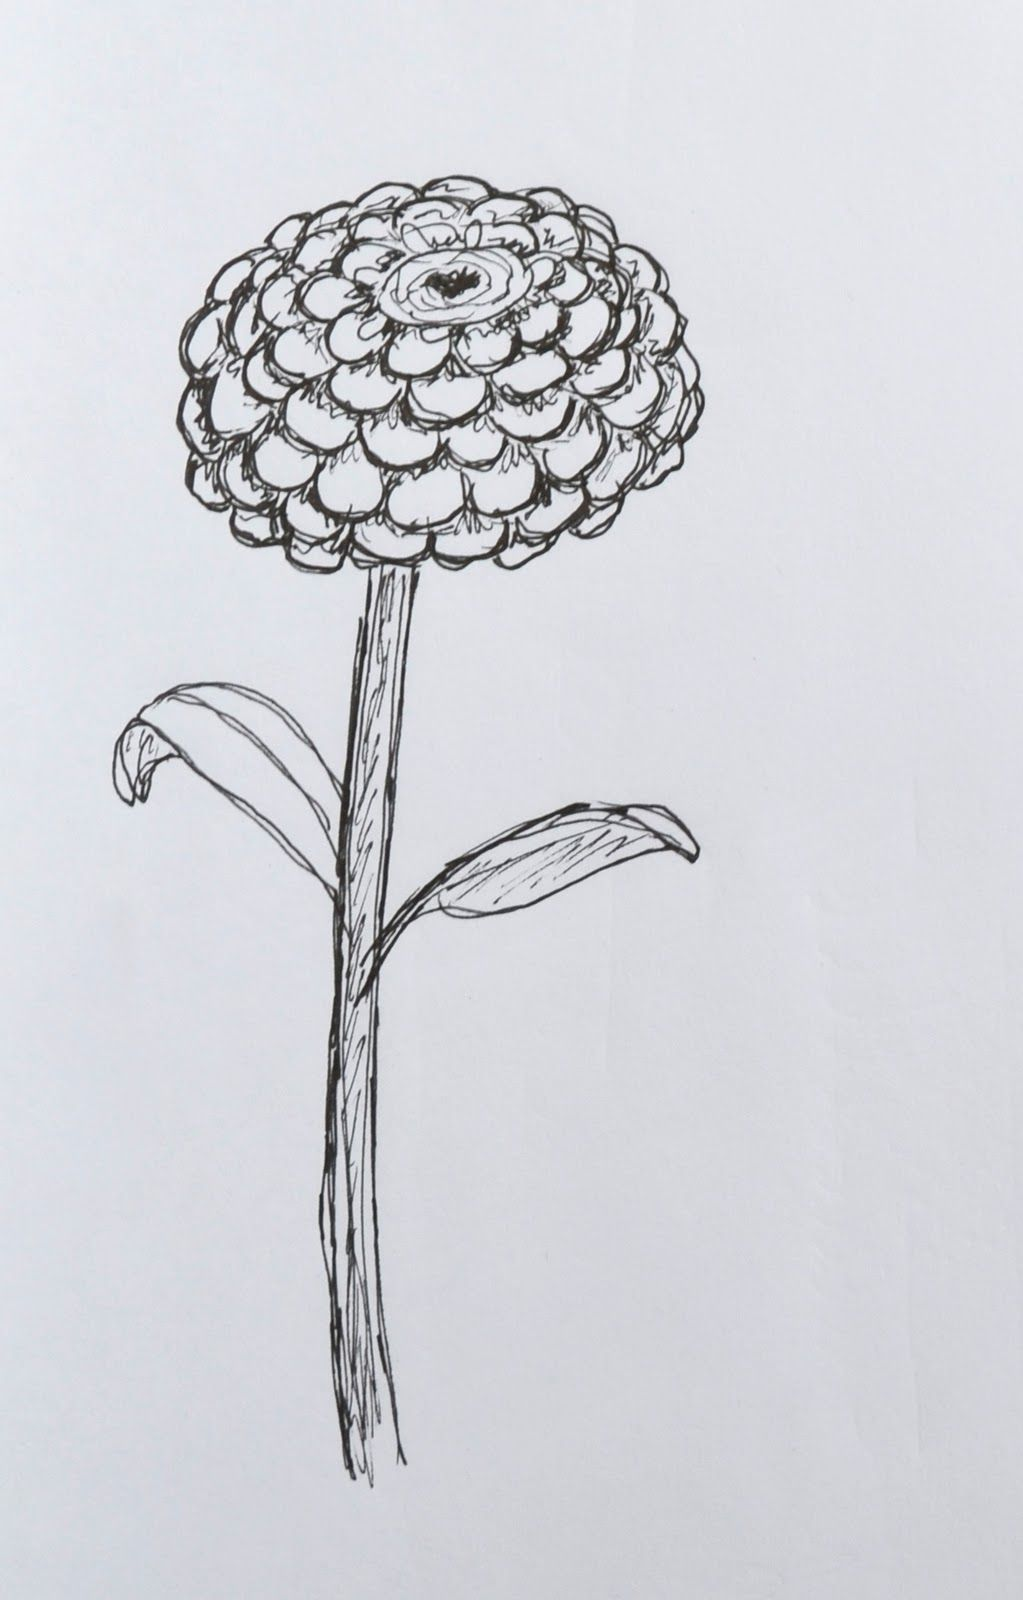 Coloring pages zinnia - Coloring Sheet Of Zinnias Color The Flower With Colored Pencils Or A Watercolor Wash